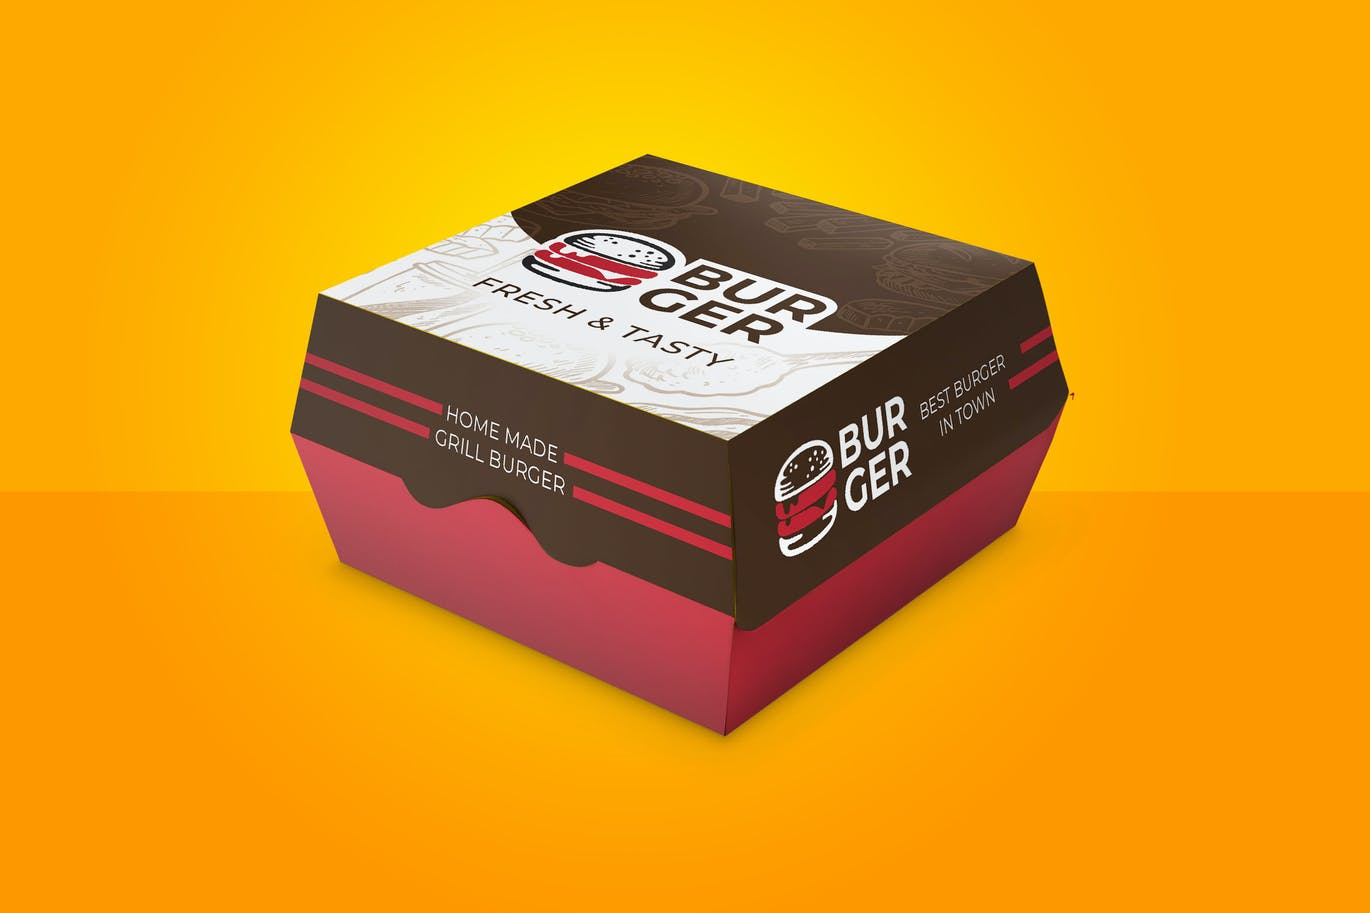 Burger Box Container Carton Design With Dieline